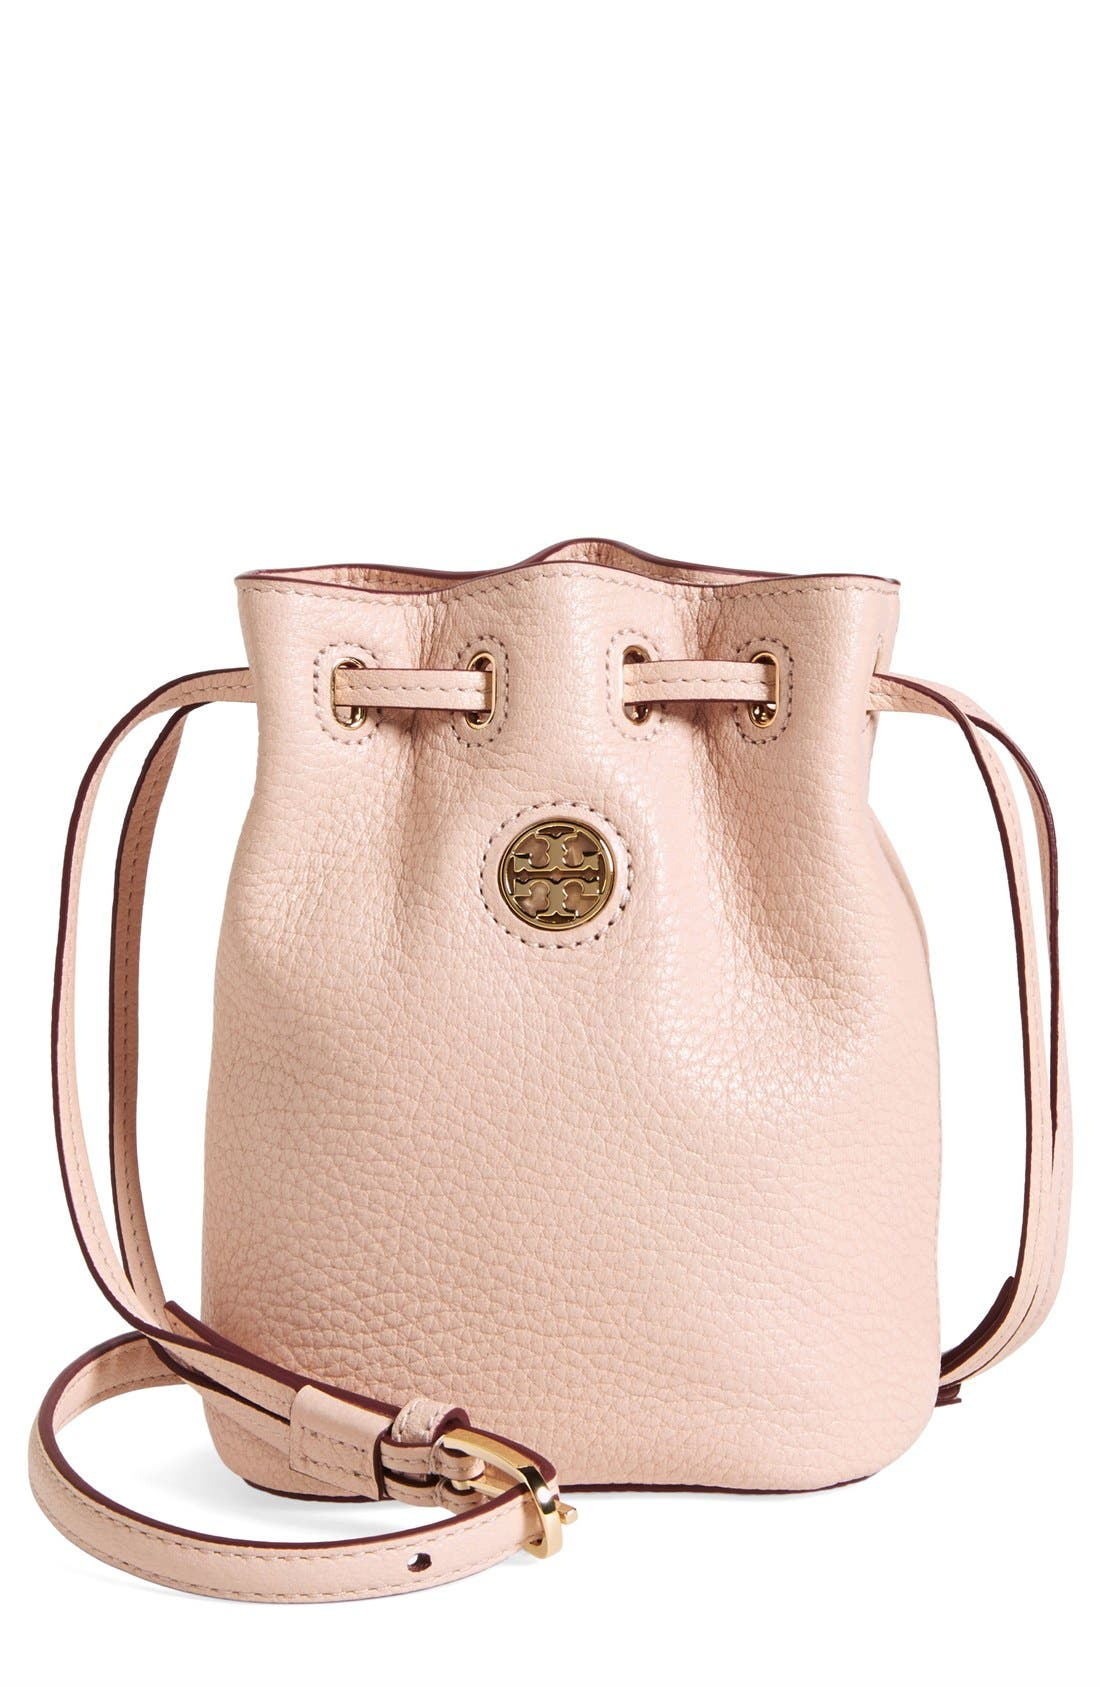 Main Image - Tory Burch 'Mini Brody' Crossbody Bucket Bag